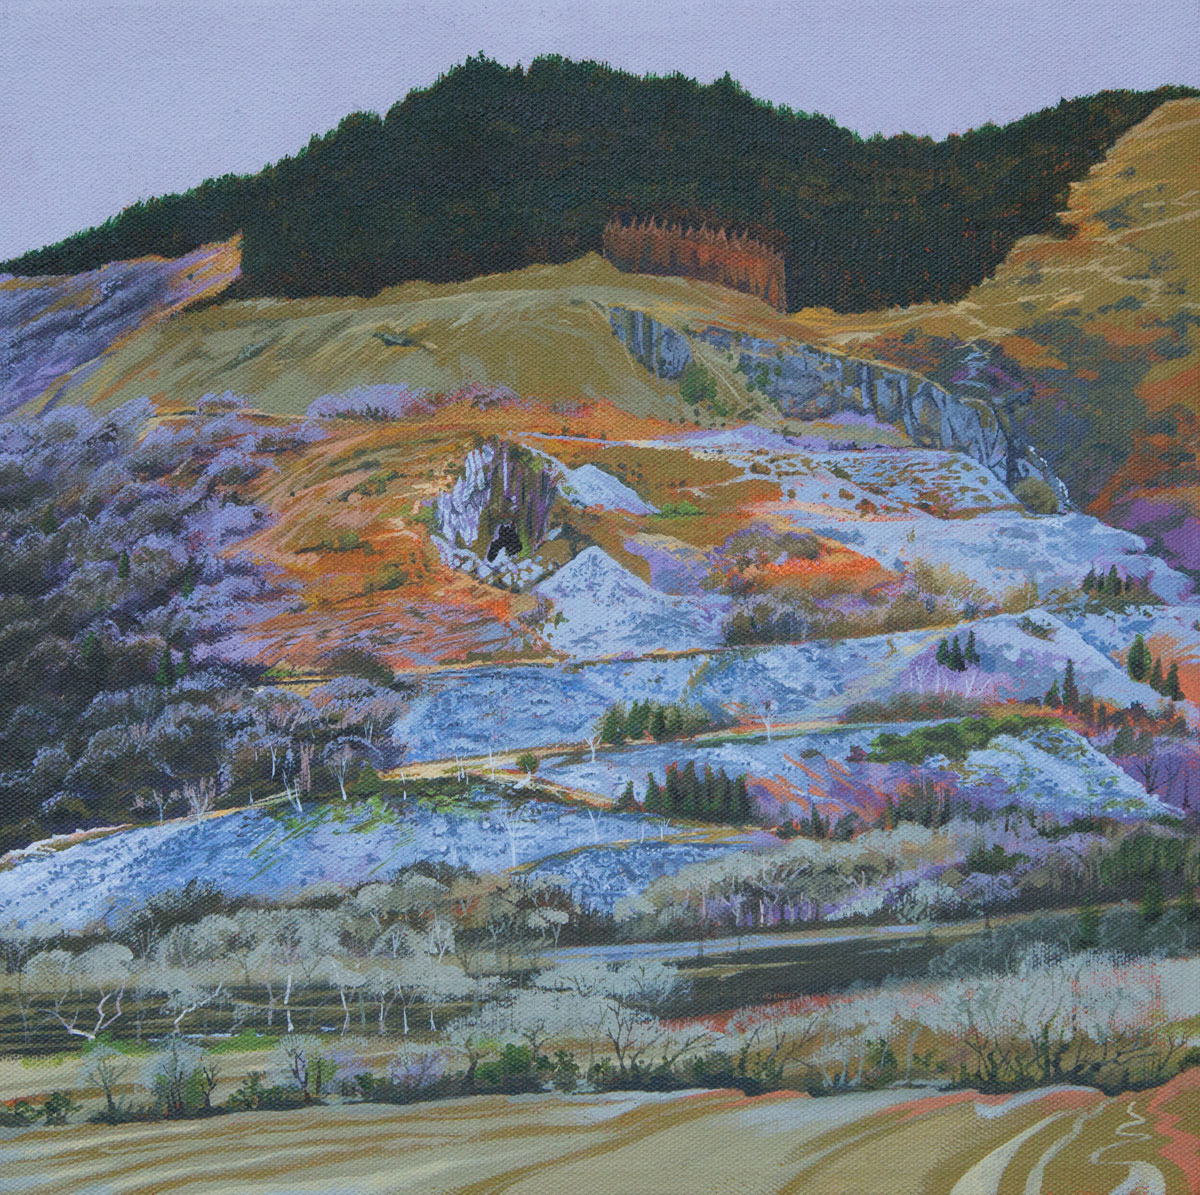 Painting of mountain in the Dyfi Valley Wales